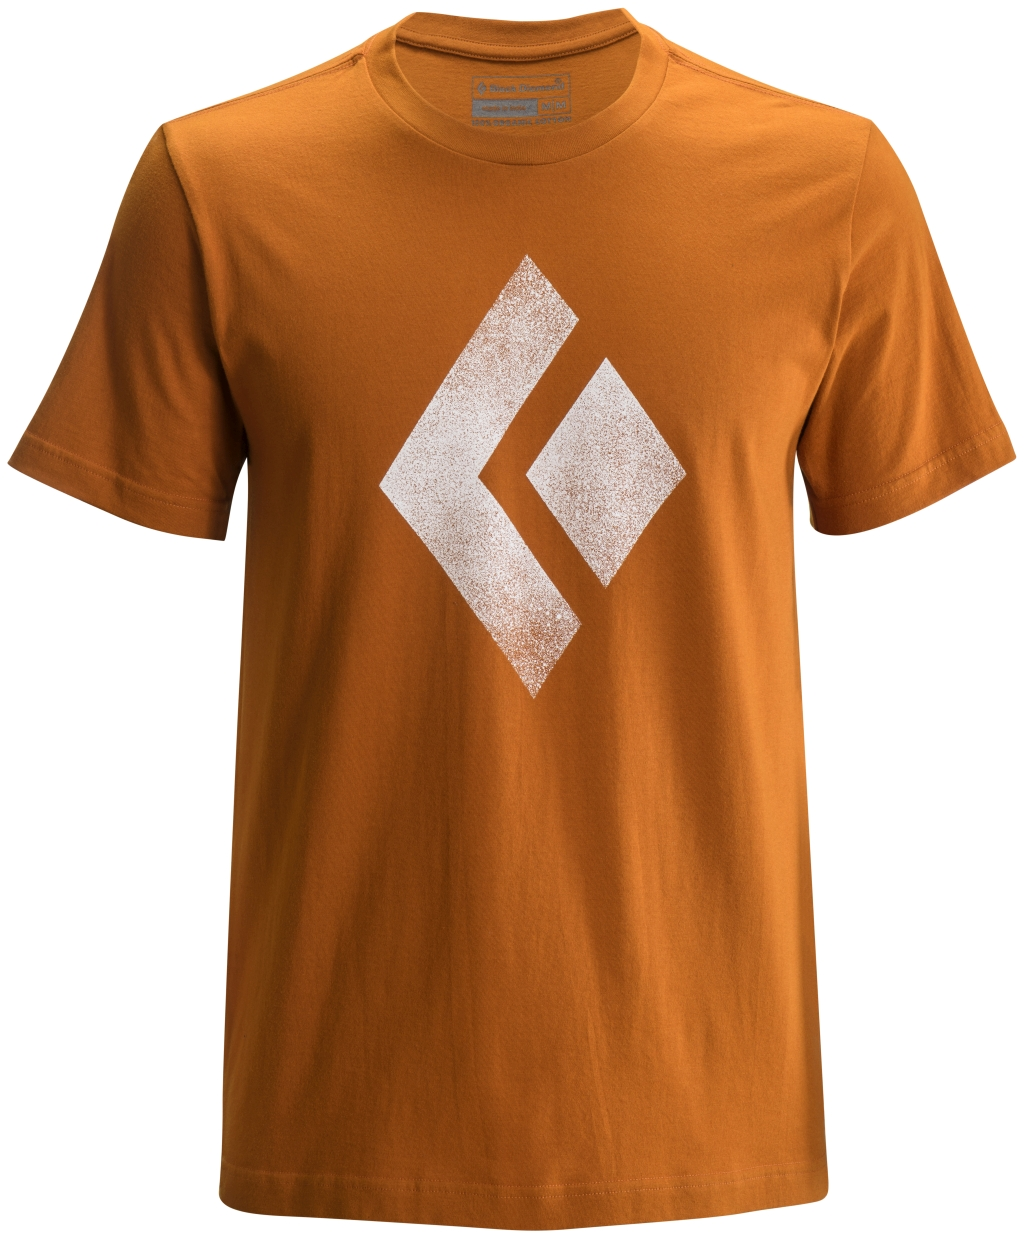 Black Diamond Chalked Up Tee Copper-30